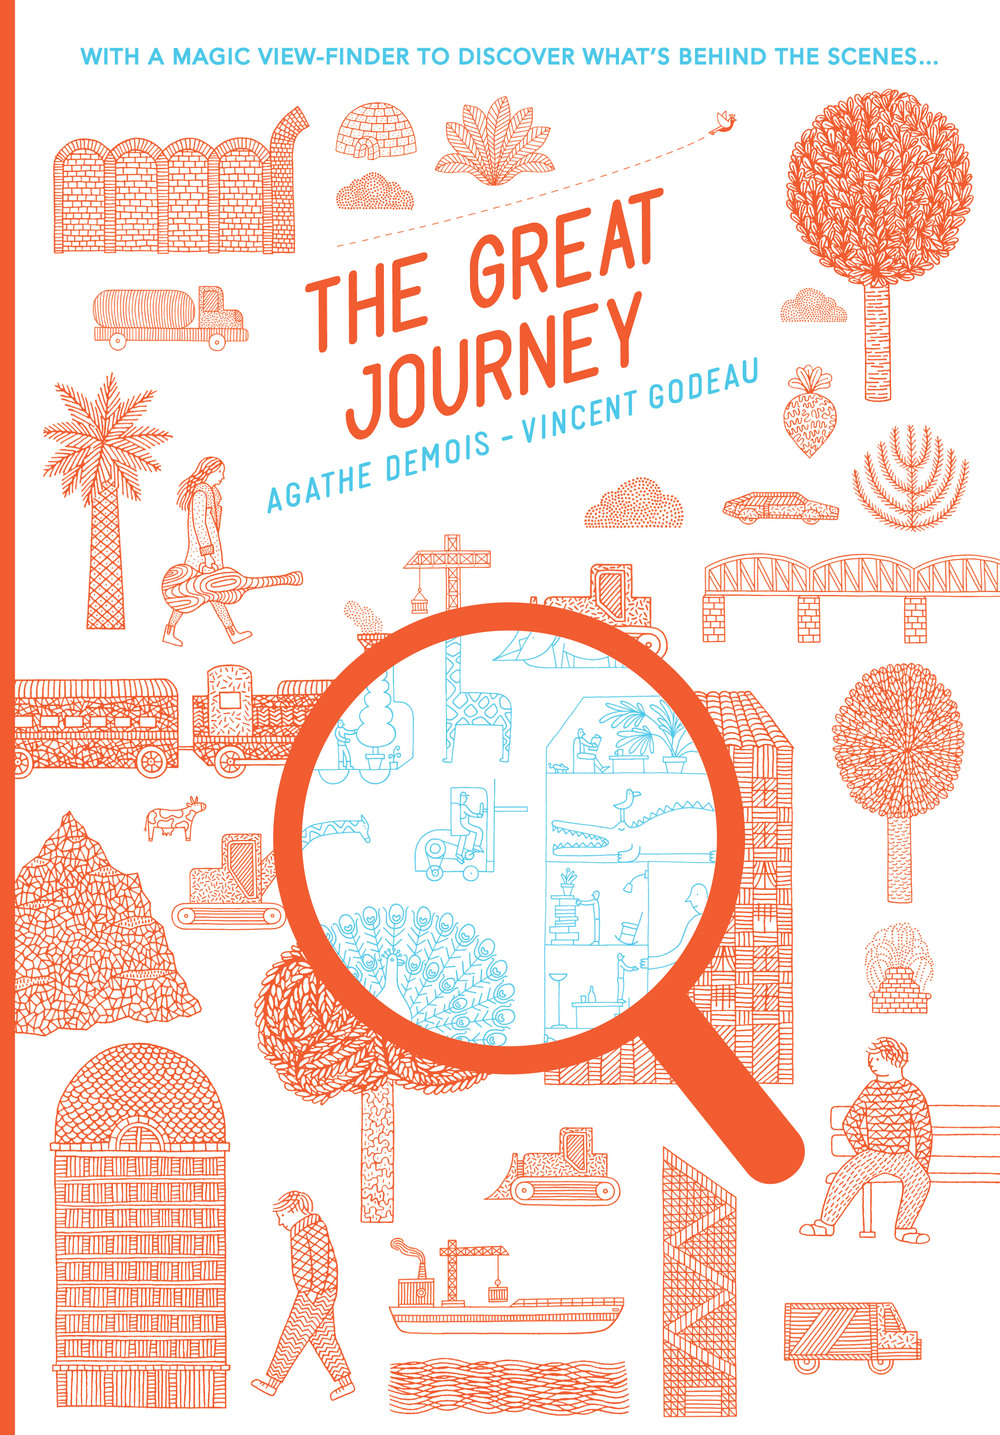 The Great Journey by Vincent Godeau and Agathe Demois (Tate Publishing) Not many books make us gasp. This one definitely did. In fact, we broke records on the longest jaw-drop ever when we discovered this magical book. It tells the story of a bird's journey around the world, from cities to the jungle. It comes with a magical paper magnifying glass which reveals in each scene exquisite hidden things. A must buy!  Get yours here.